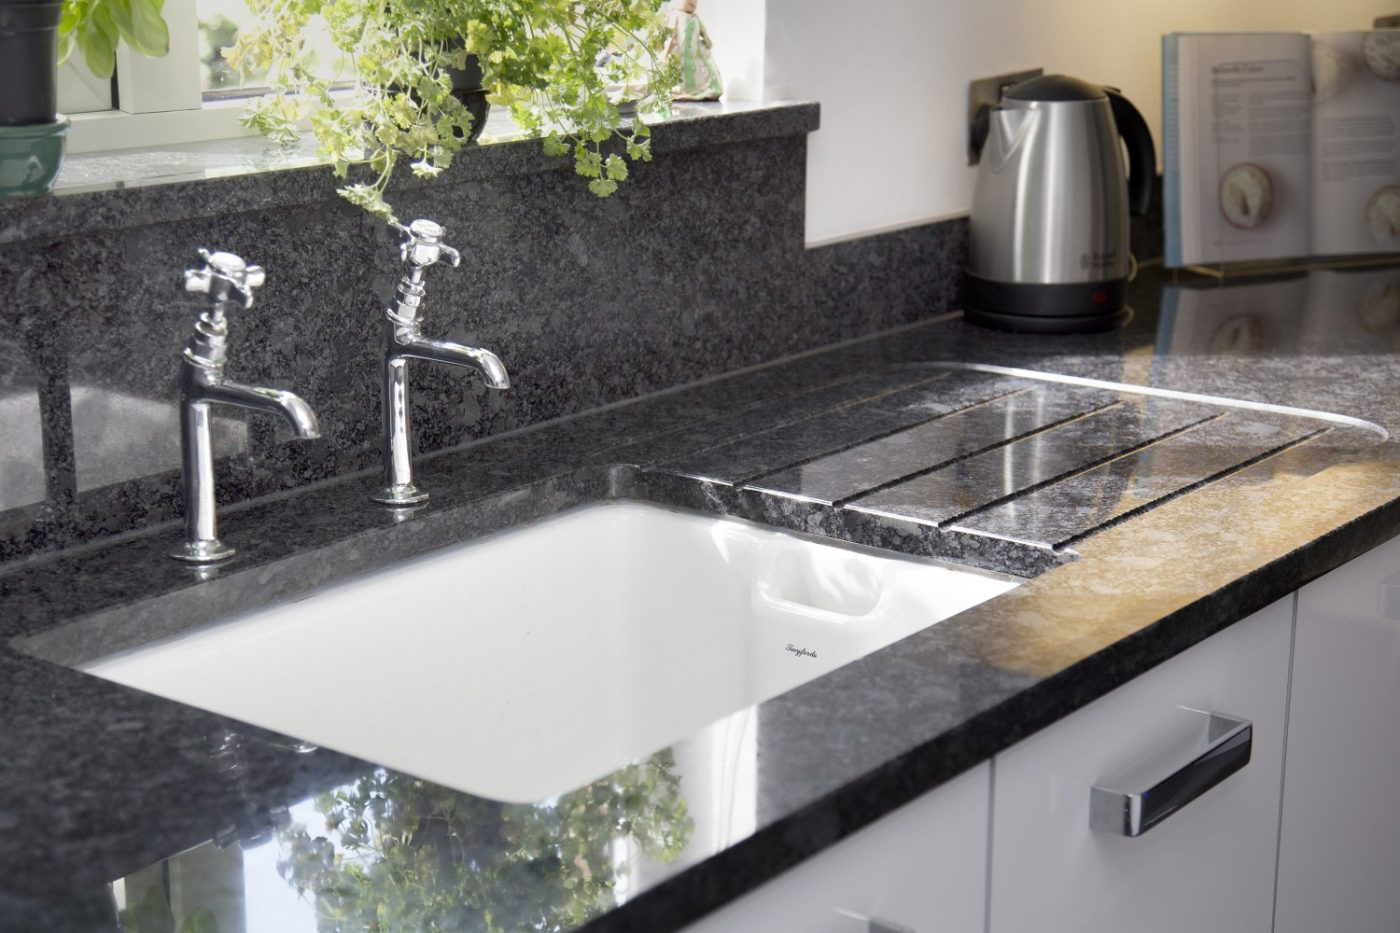 Arbeitsplatte Küche Alternative Zu Granit Devon Kitchen Worktop Projects In Granite And Caesarstone